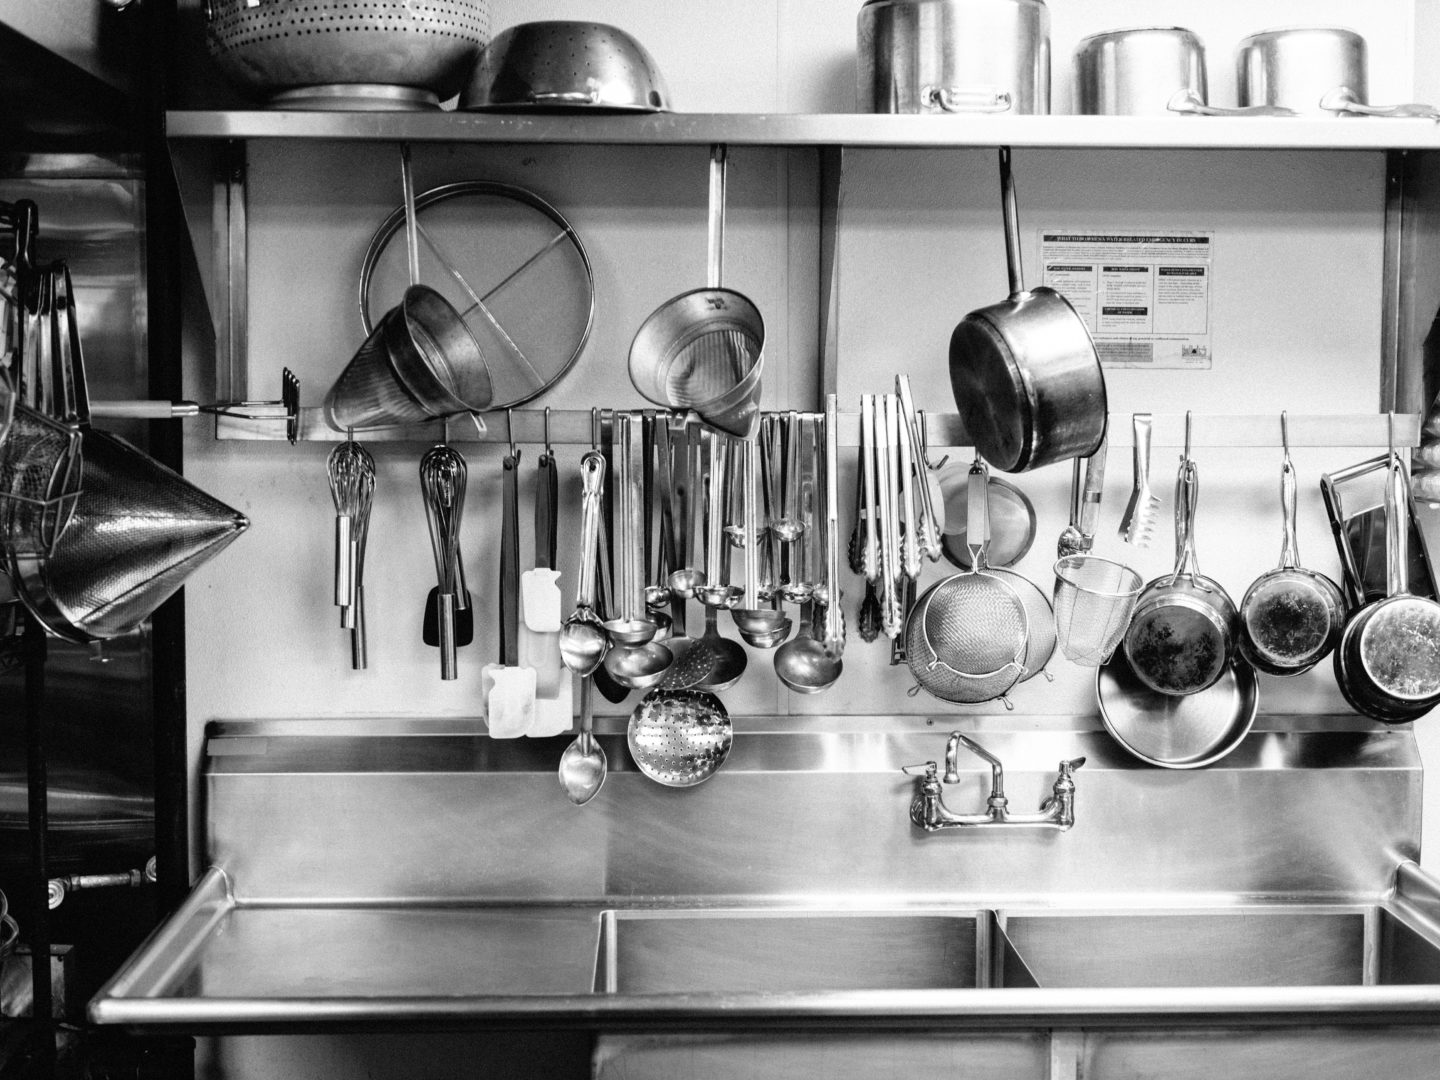 Pots, pans and tools hanging above commercial kitchen sink